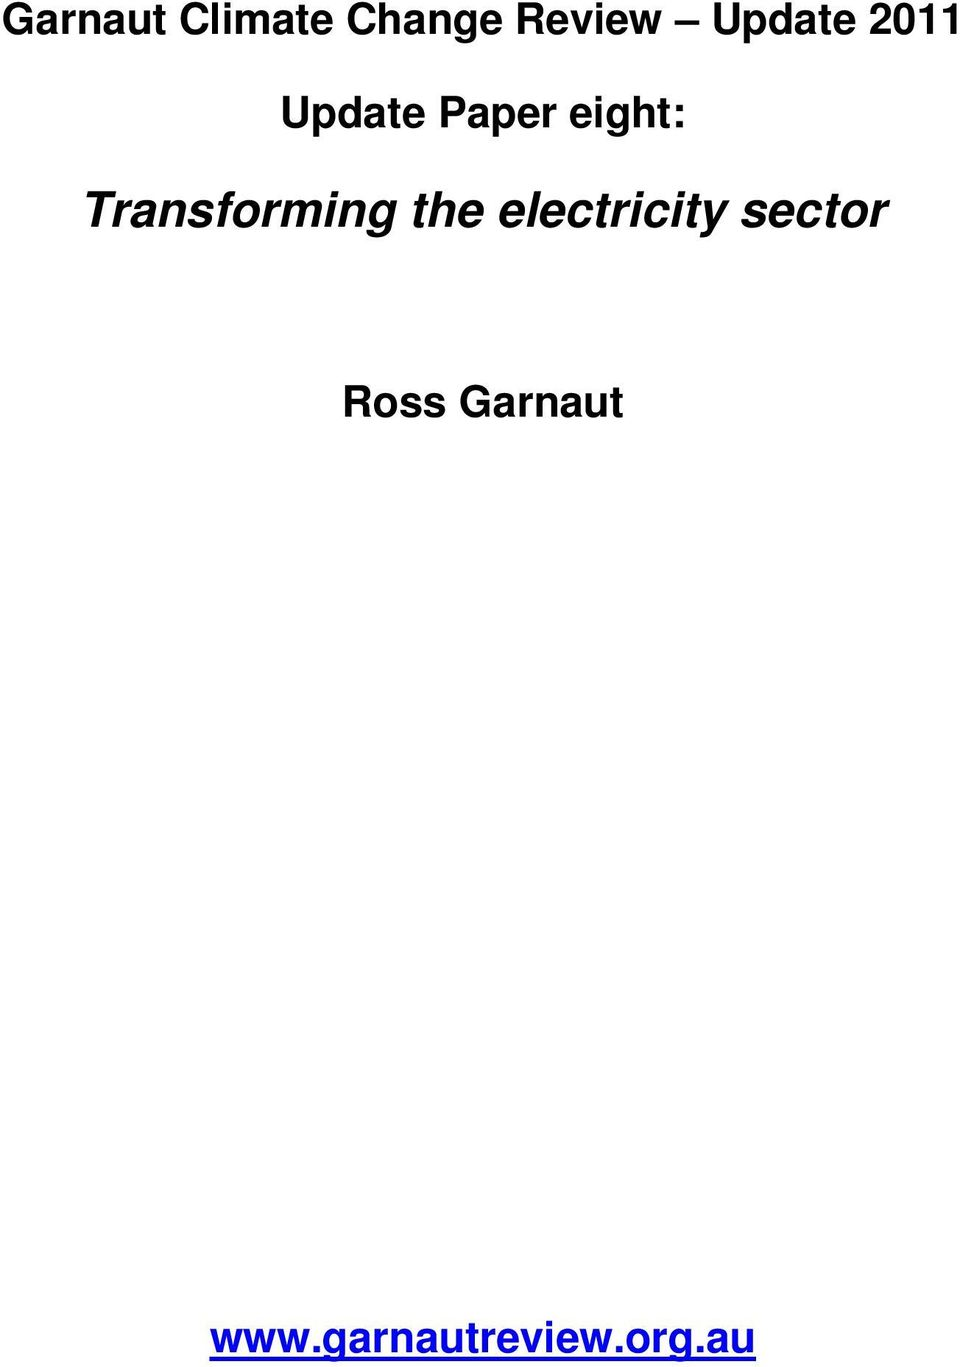 Transforming the electricity